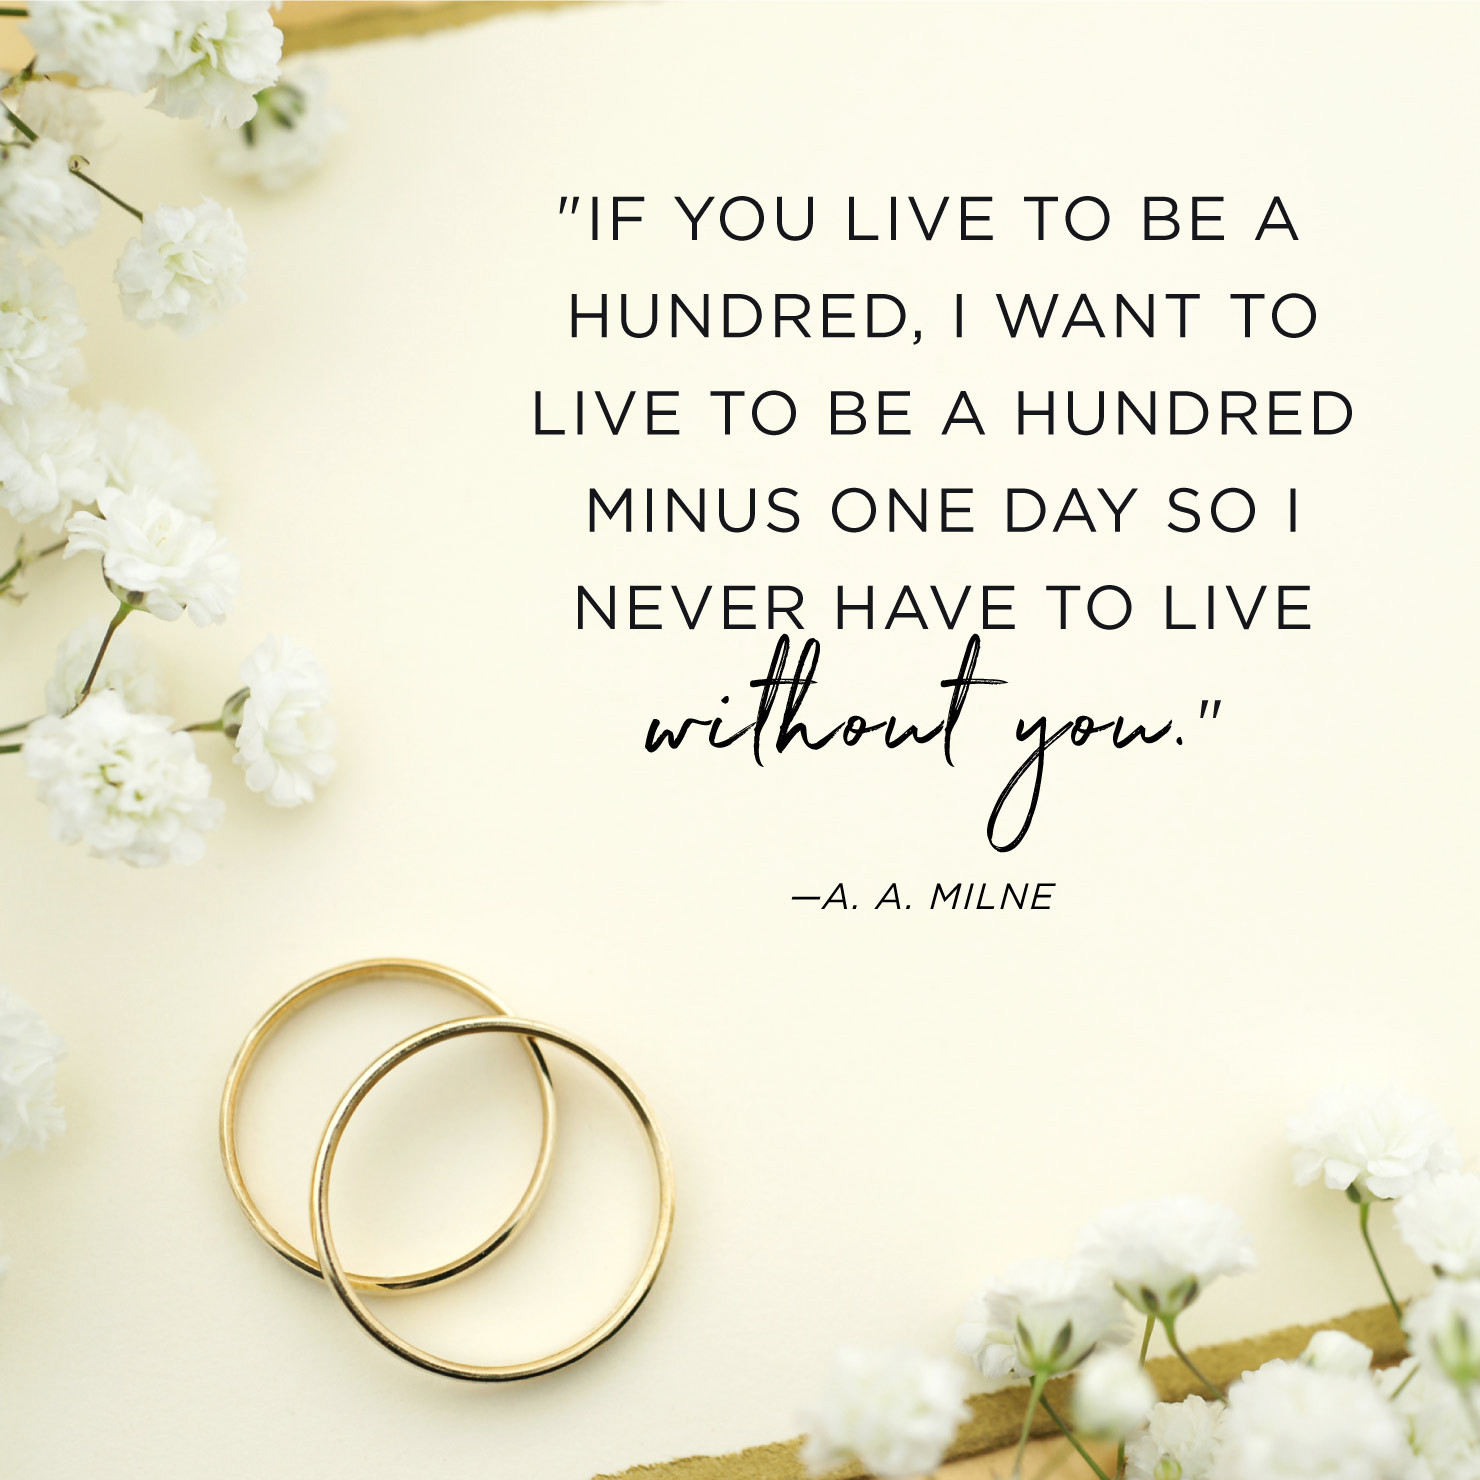 Anniversary Love Quotes  60 Happy Anniversary Quotes to Celebrate Your Love